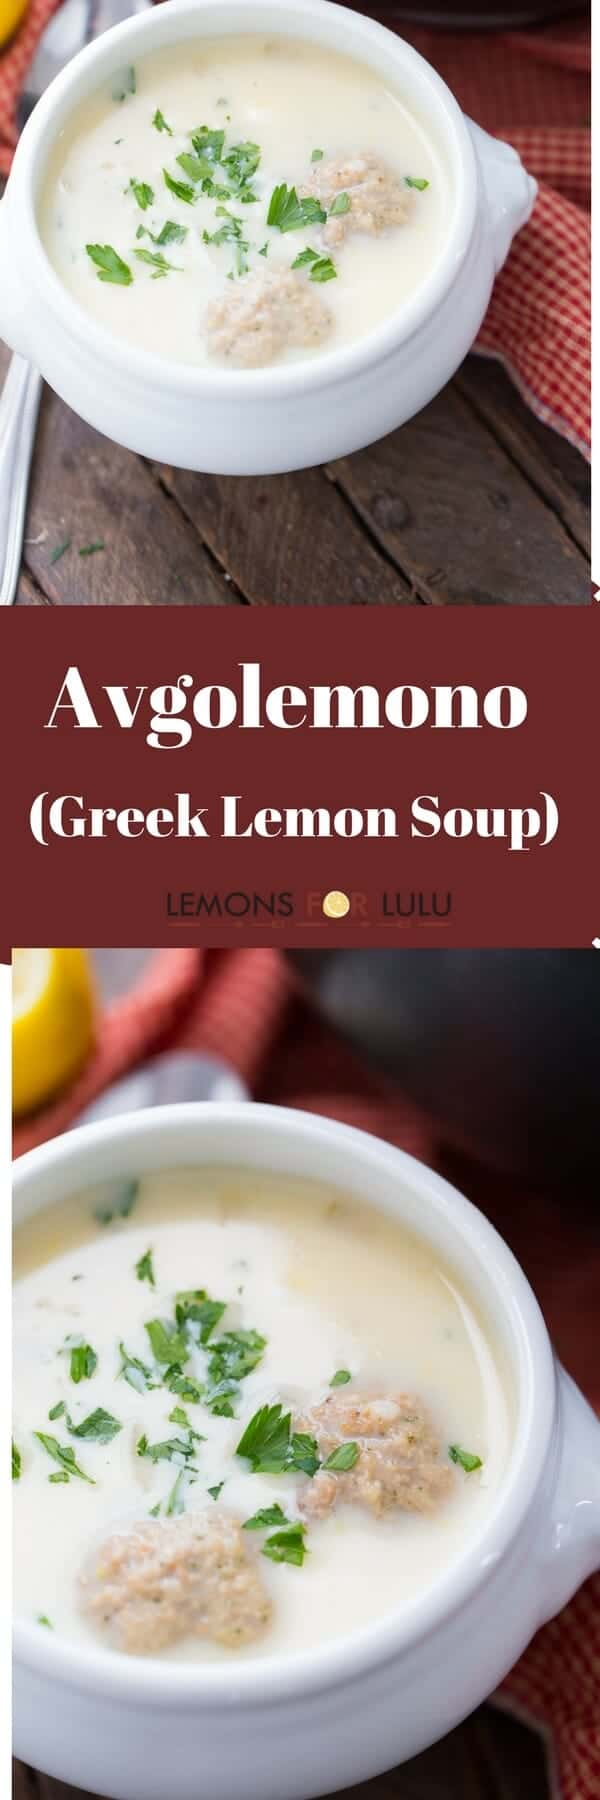 Avgolemono is pure comfort food. This Greek lemon soup recipe requires only a handful of ingredients yet is such a satisfying and comforting meal!